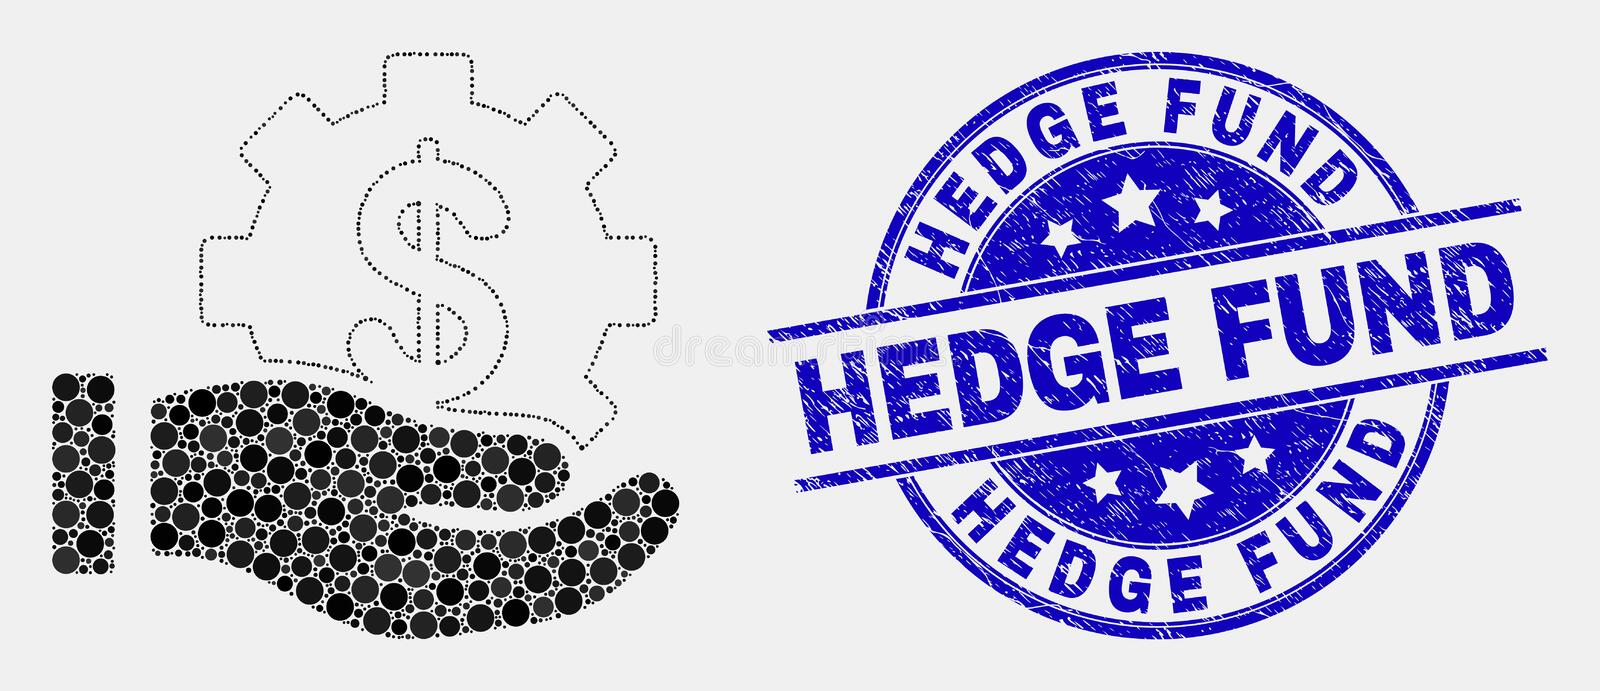 Vector Pixel Financial Service Offer Hand Icon and Scratched Hedge Fund Stamp Seal royalty free illustration